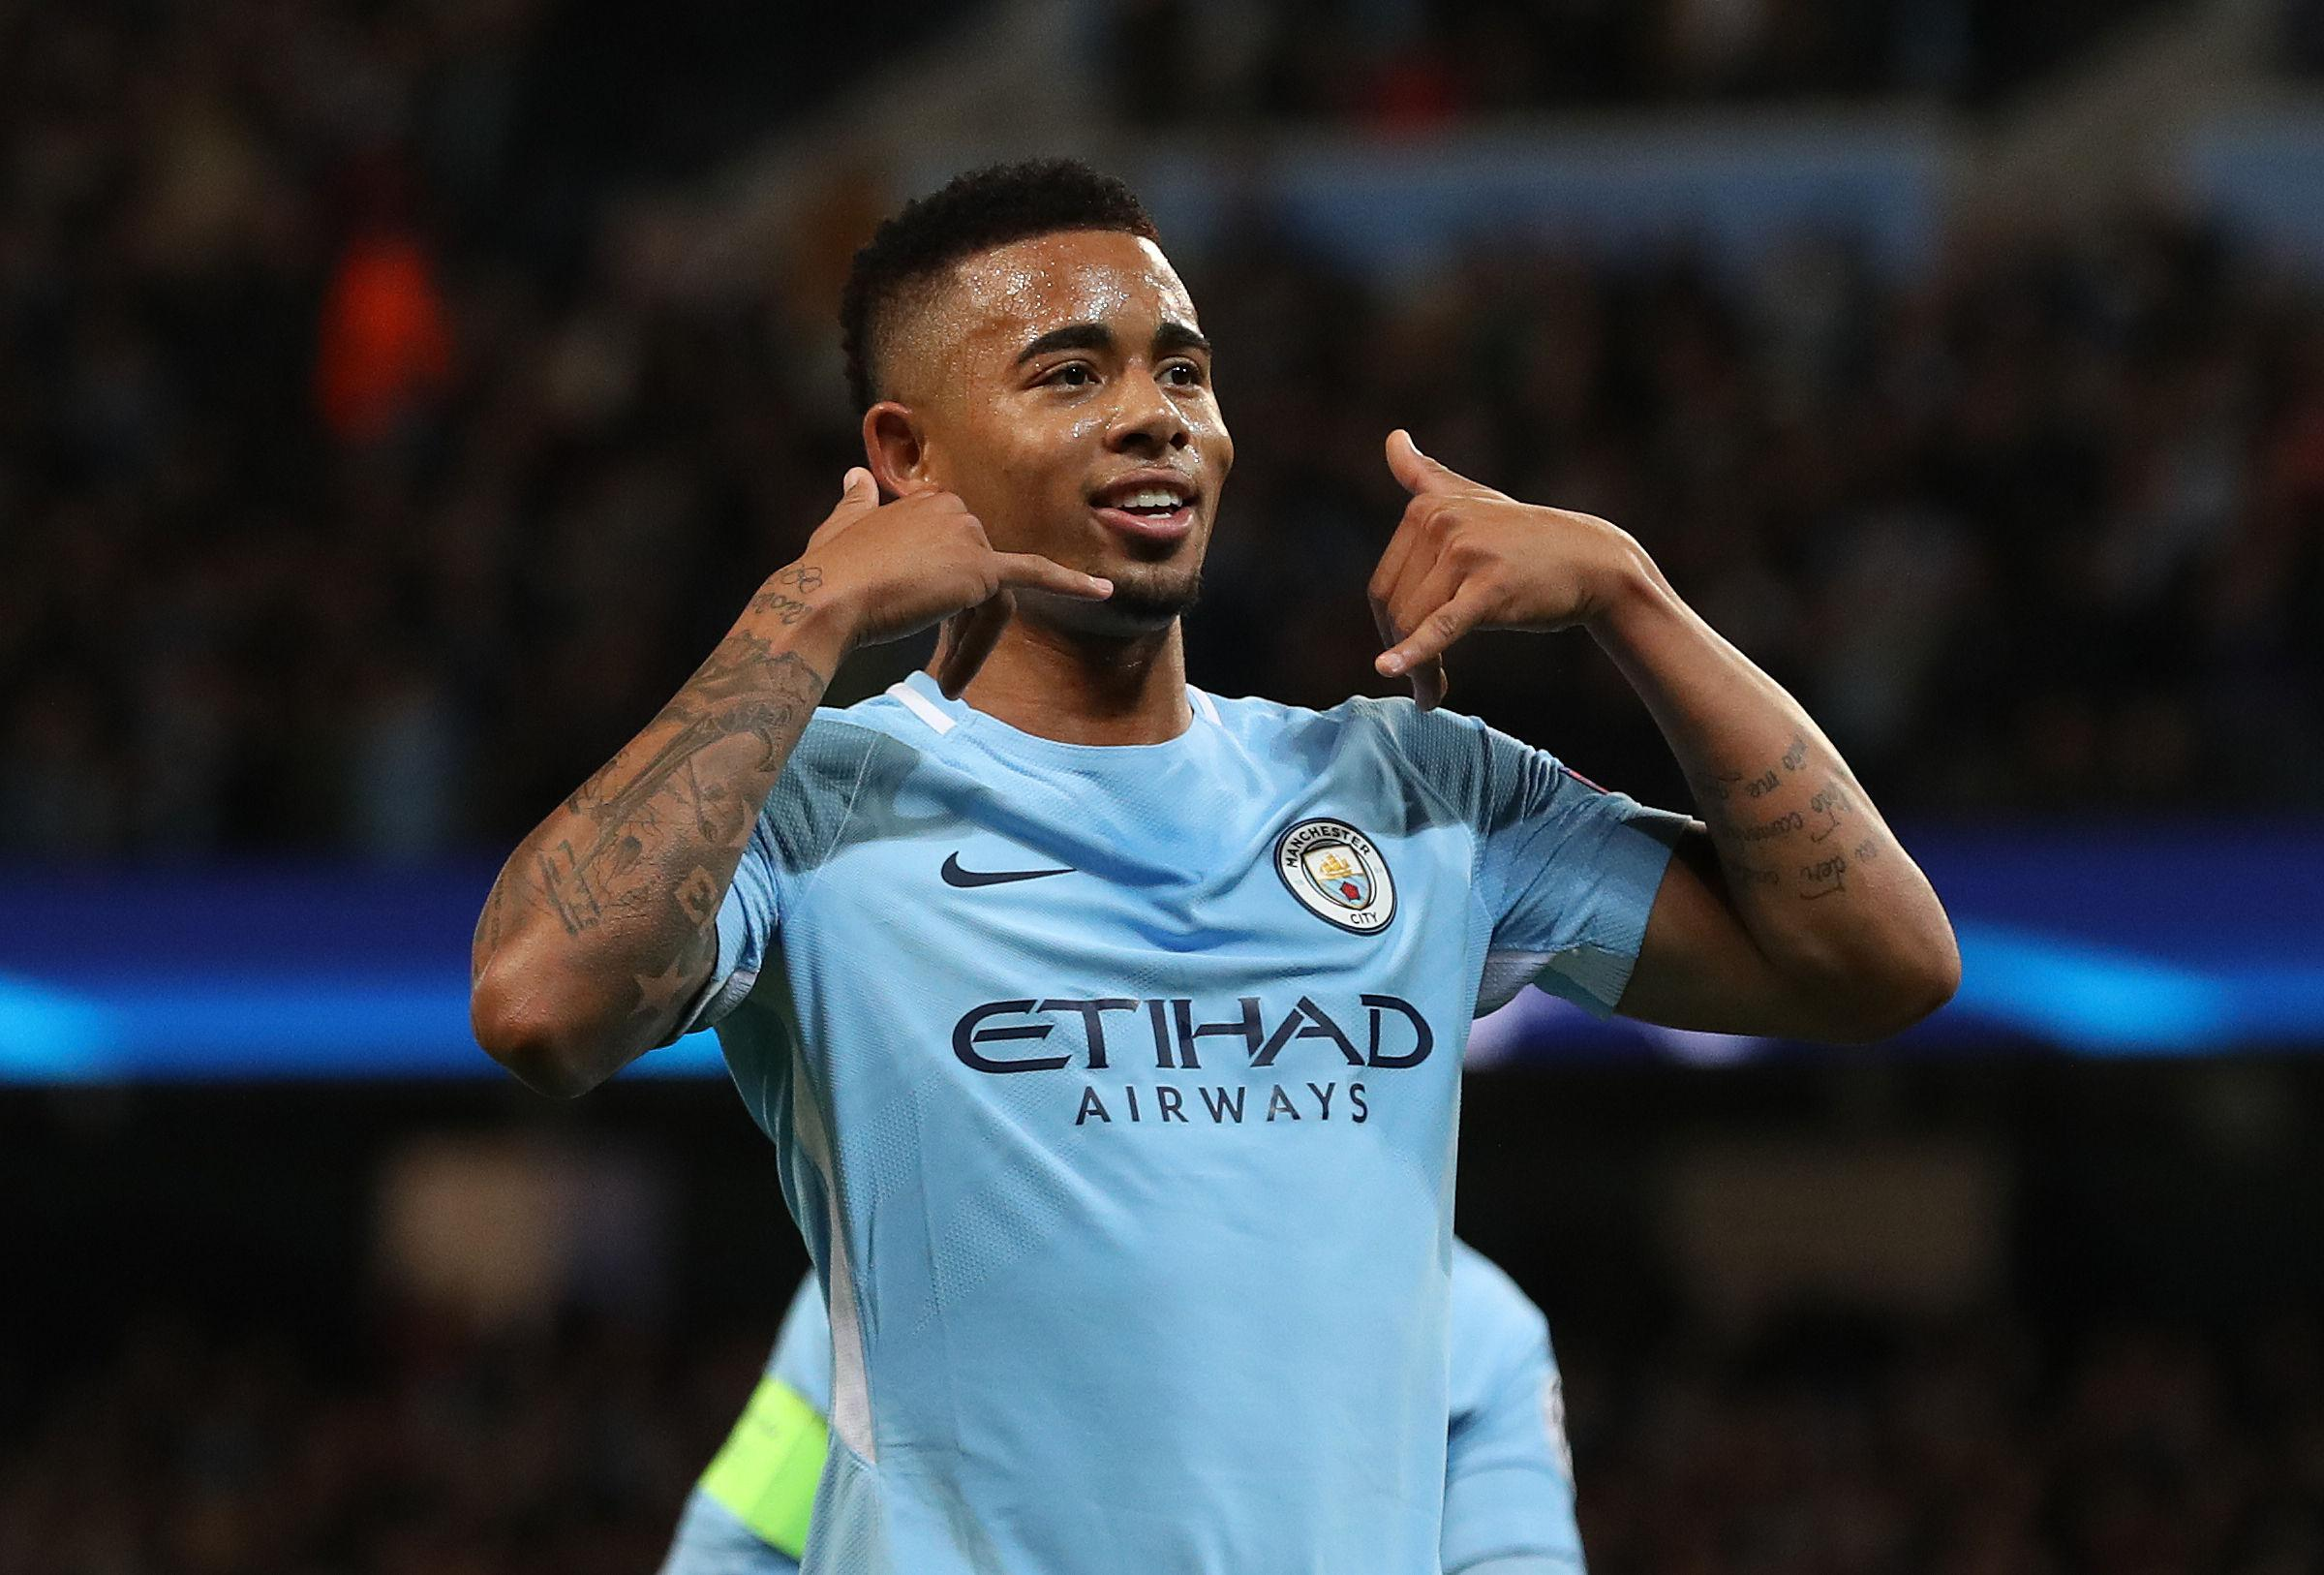 Gabriel Jesus scored when City beat Napoli at the Etihad